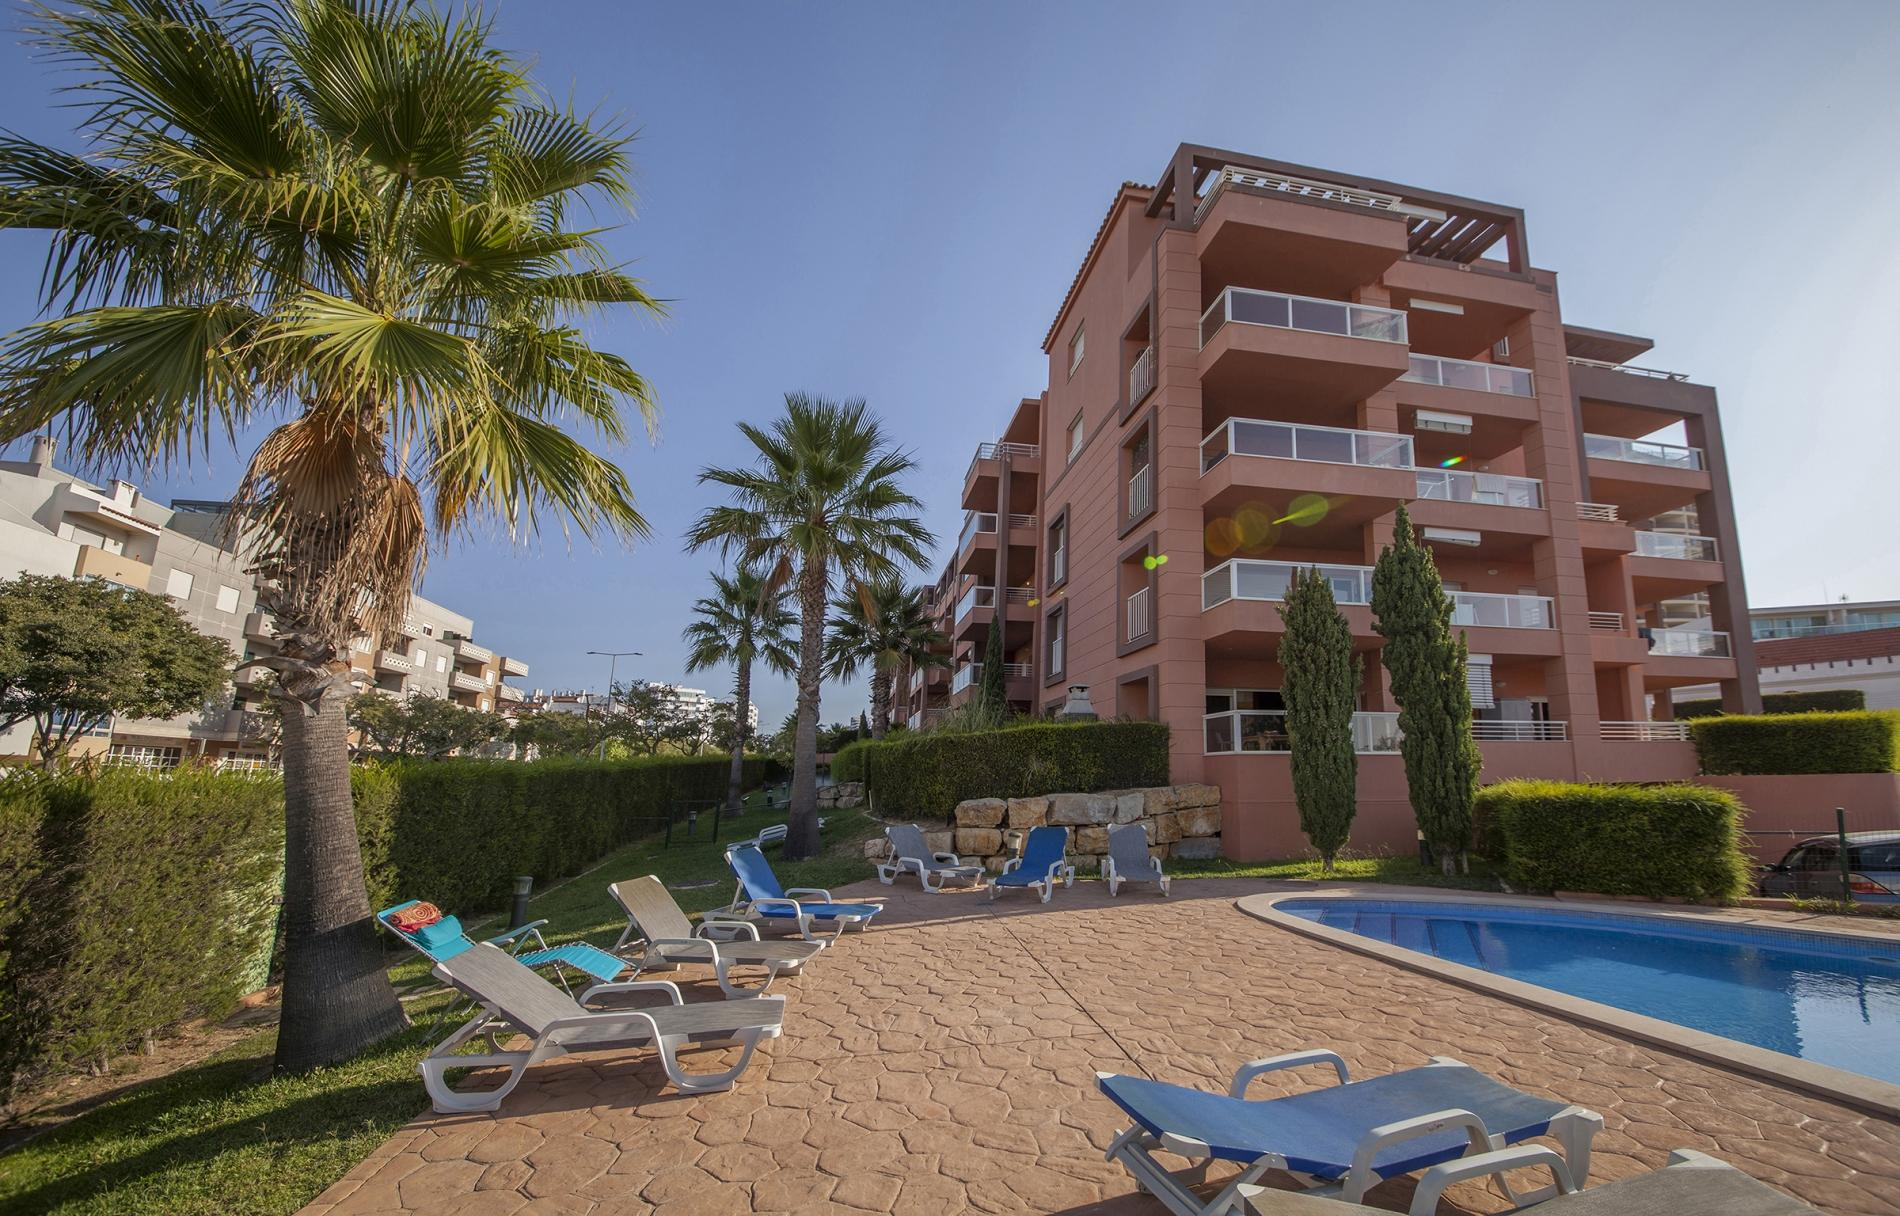 Apartment B02 - Fantastic Apartment with Pool Almost on the Sandy Beach  photo 20866919